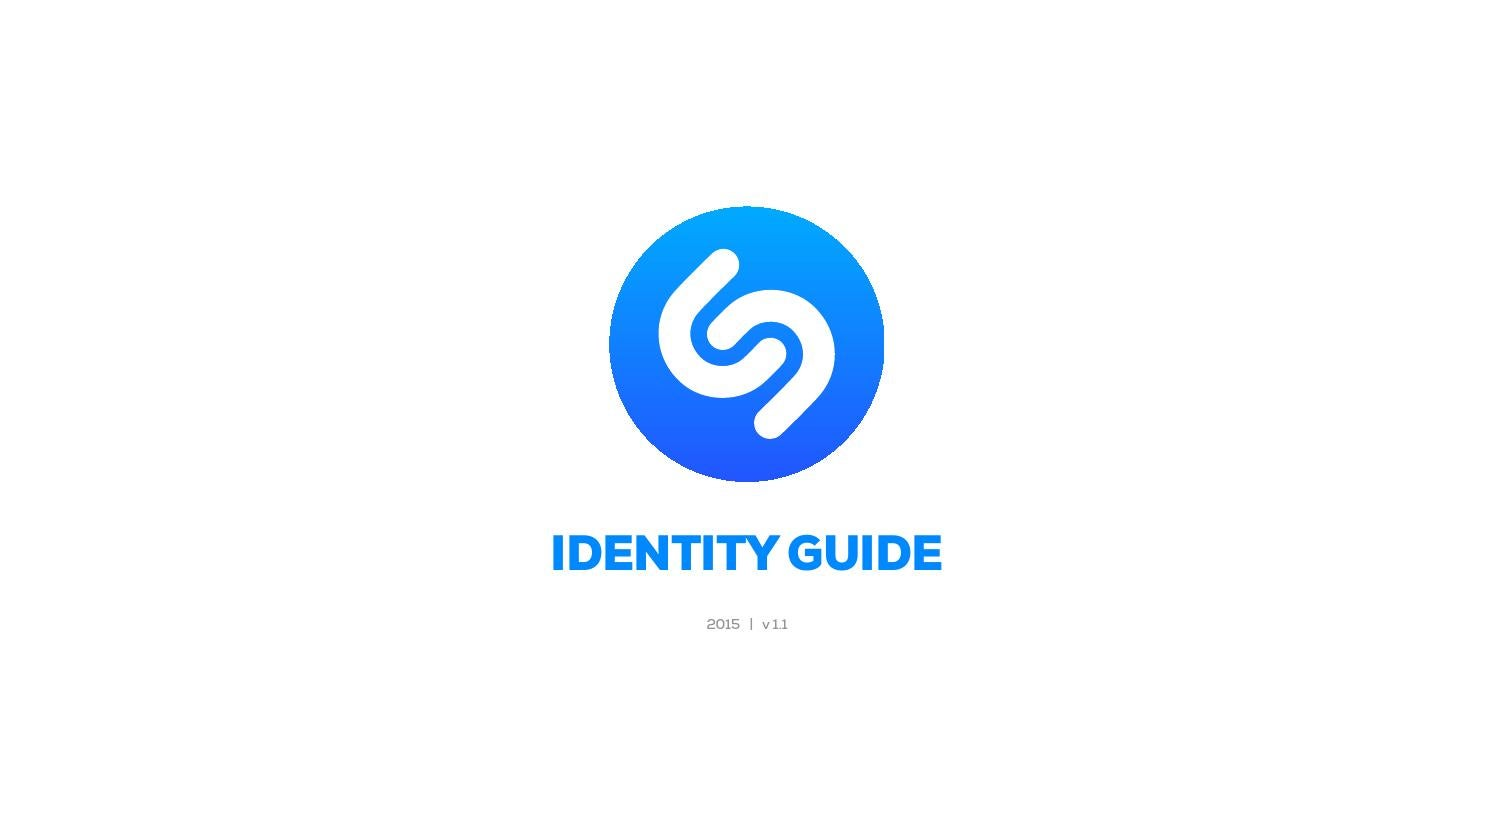 Shazam Brand Book & Identity Guidelines by Duncan Riley - issuu